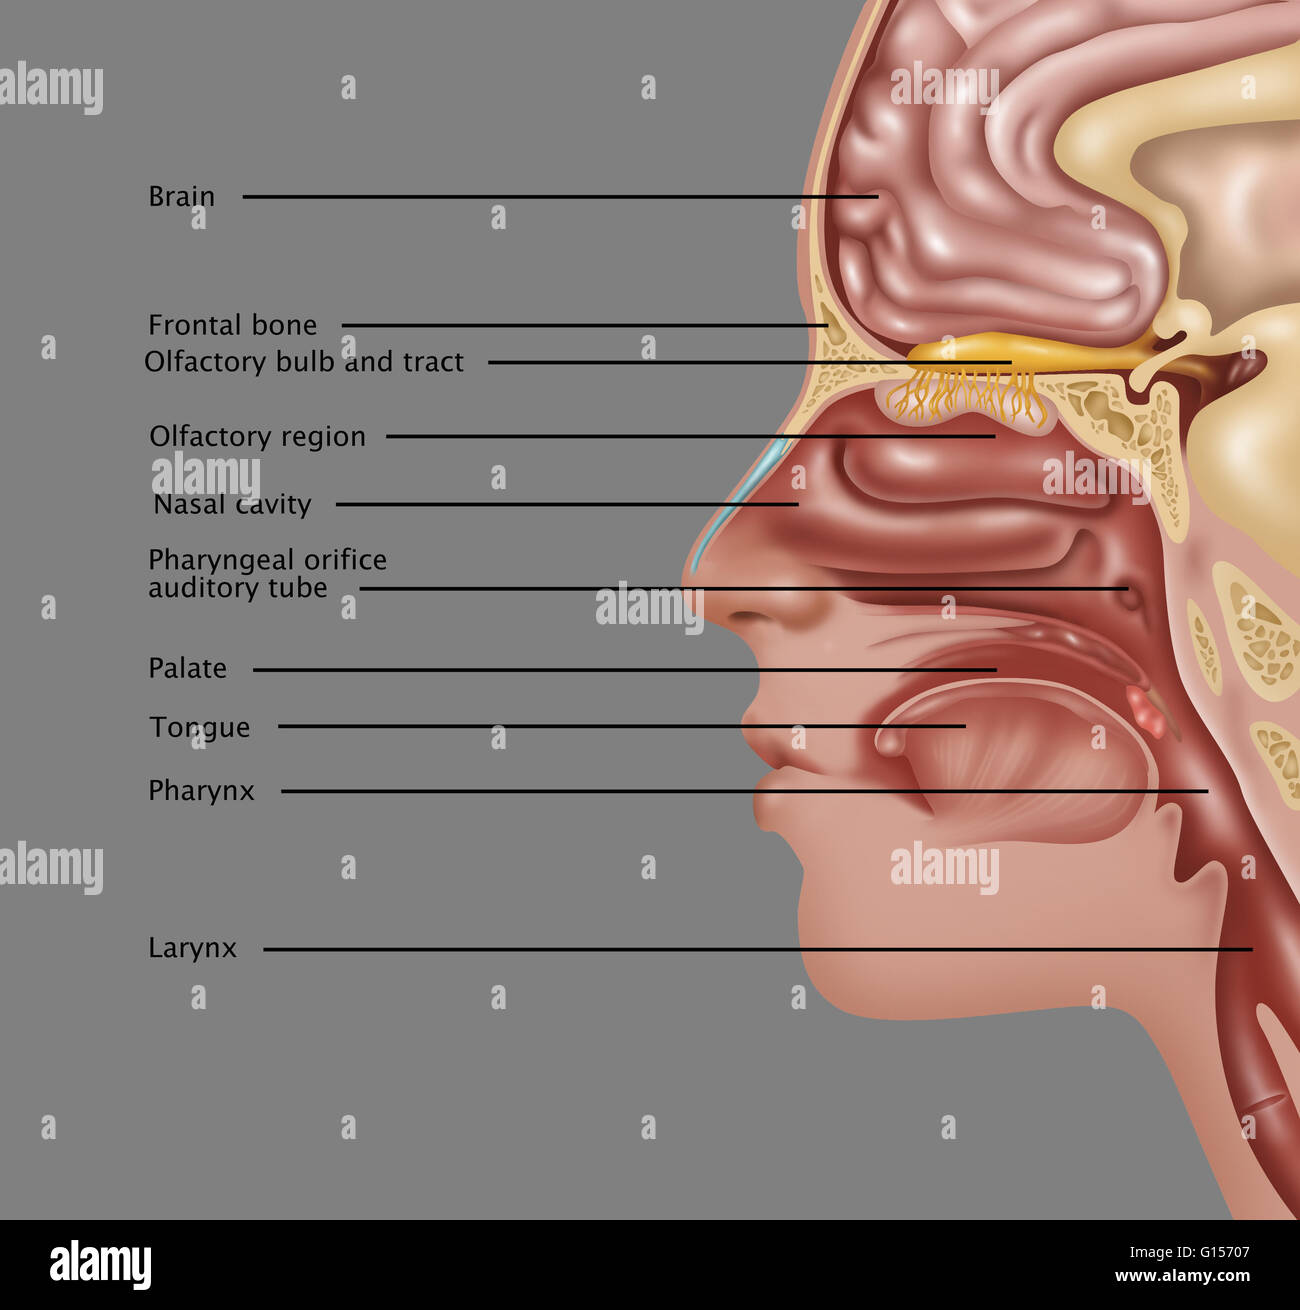 Illustration Of The Anatomy Used In The Sense Of Smell The